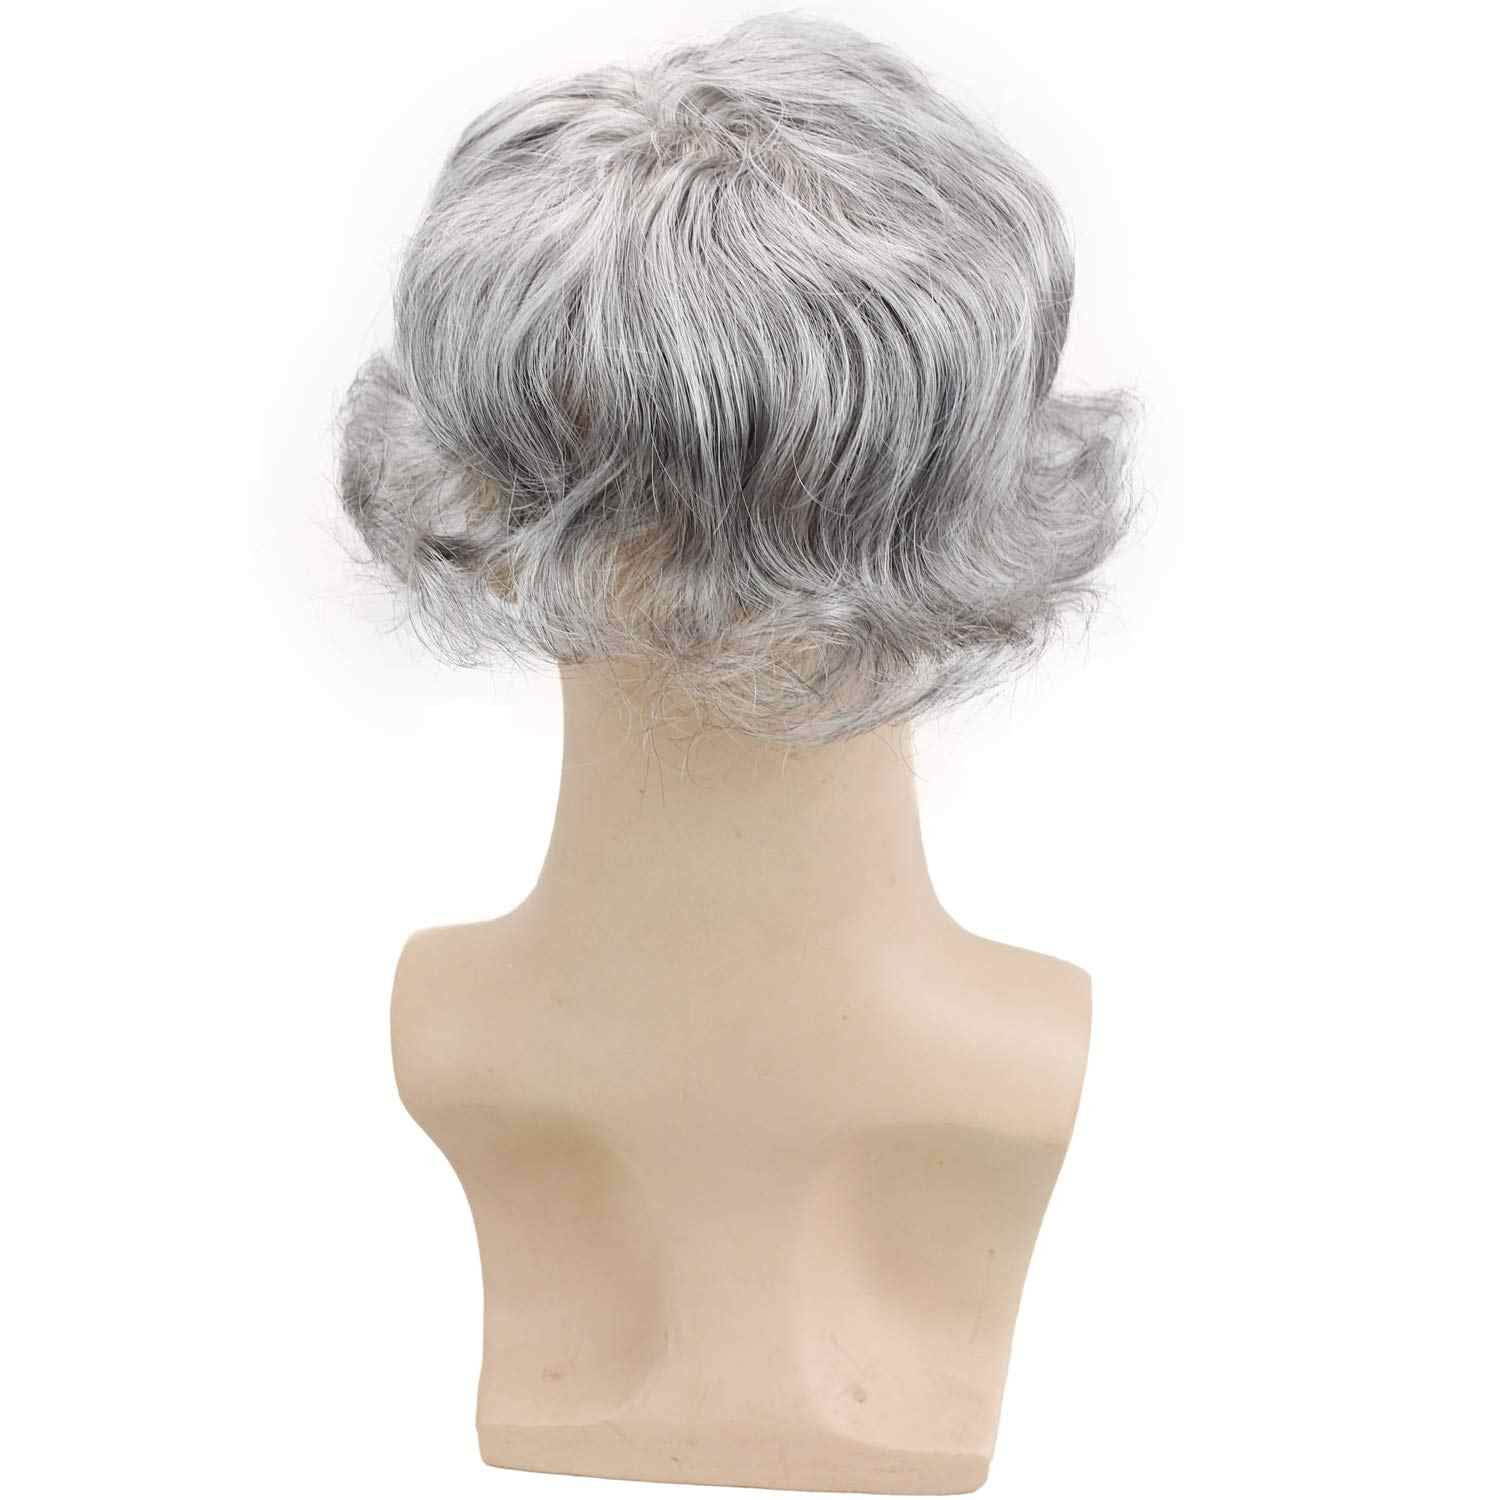 """Men's Toupee European Human Hair Replacement Wigs Mono Lace with PU Around 6""""x8"""" for Man 20% 1B Black Hair Mixed 80% Grey Color"""